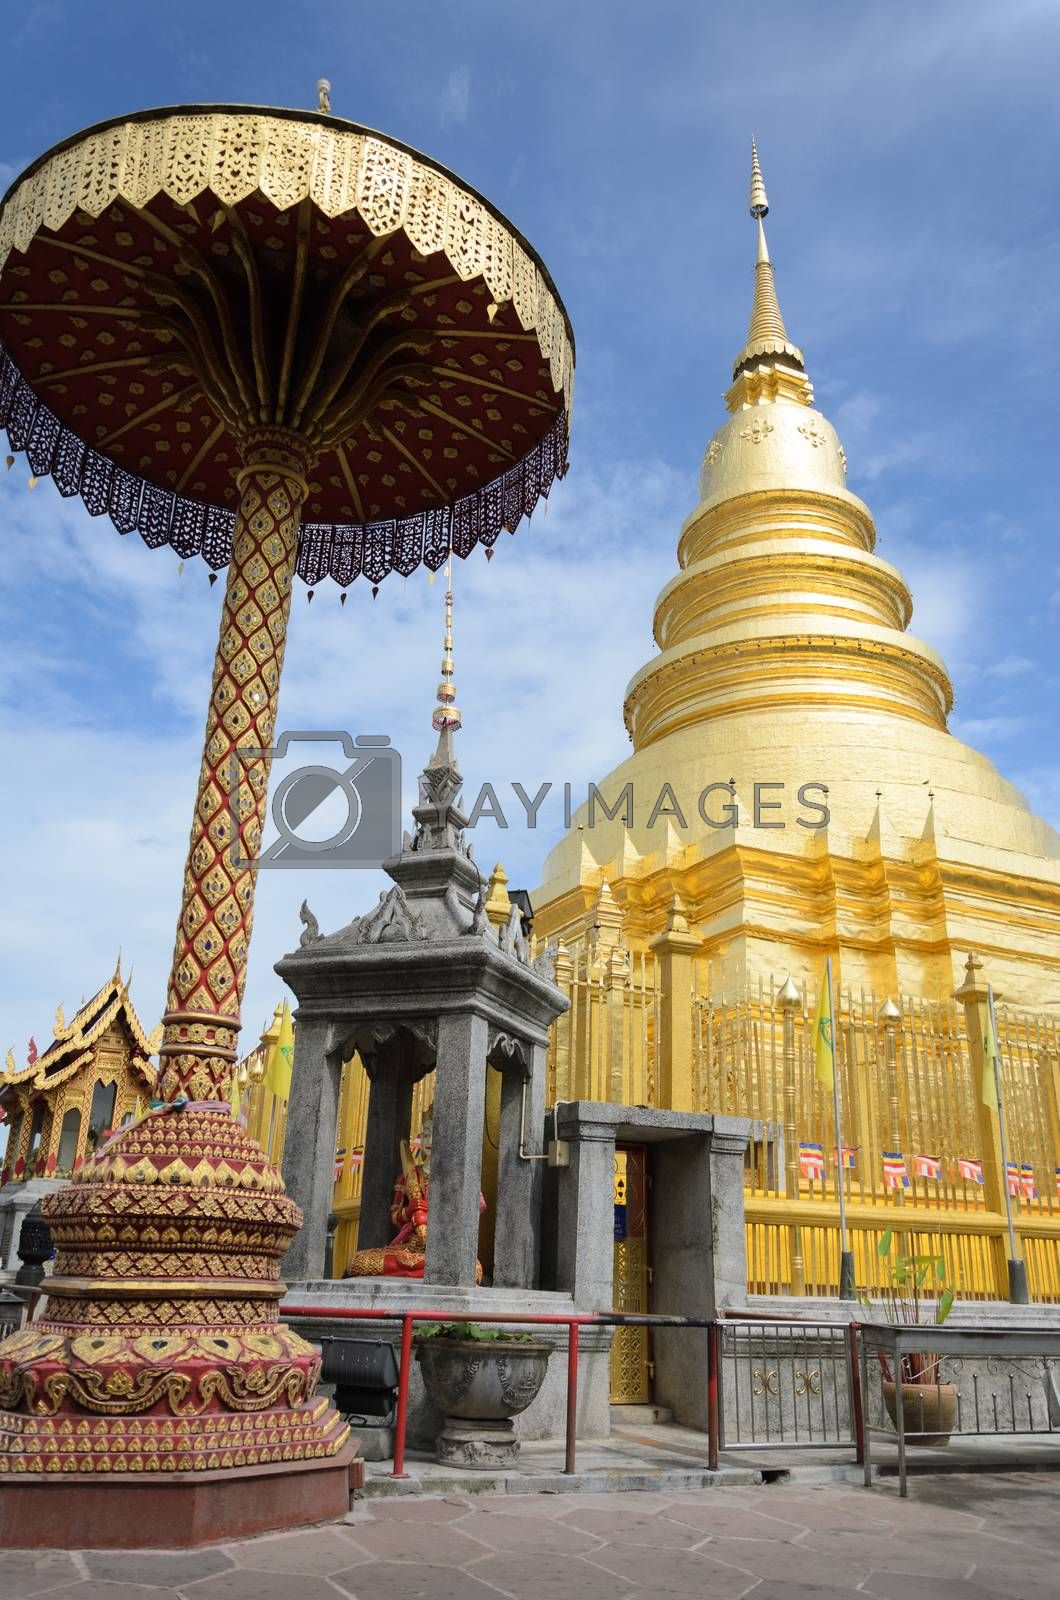 Royalty free image of Golden Pagoda at Wat Phra That Hariphunchai in Lamphun province by hatoriz